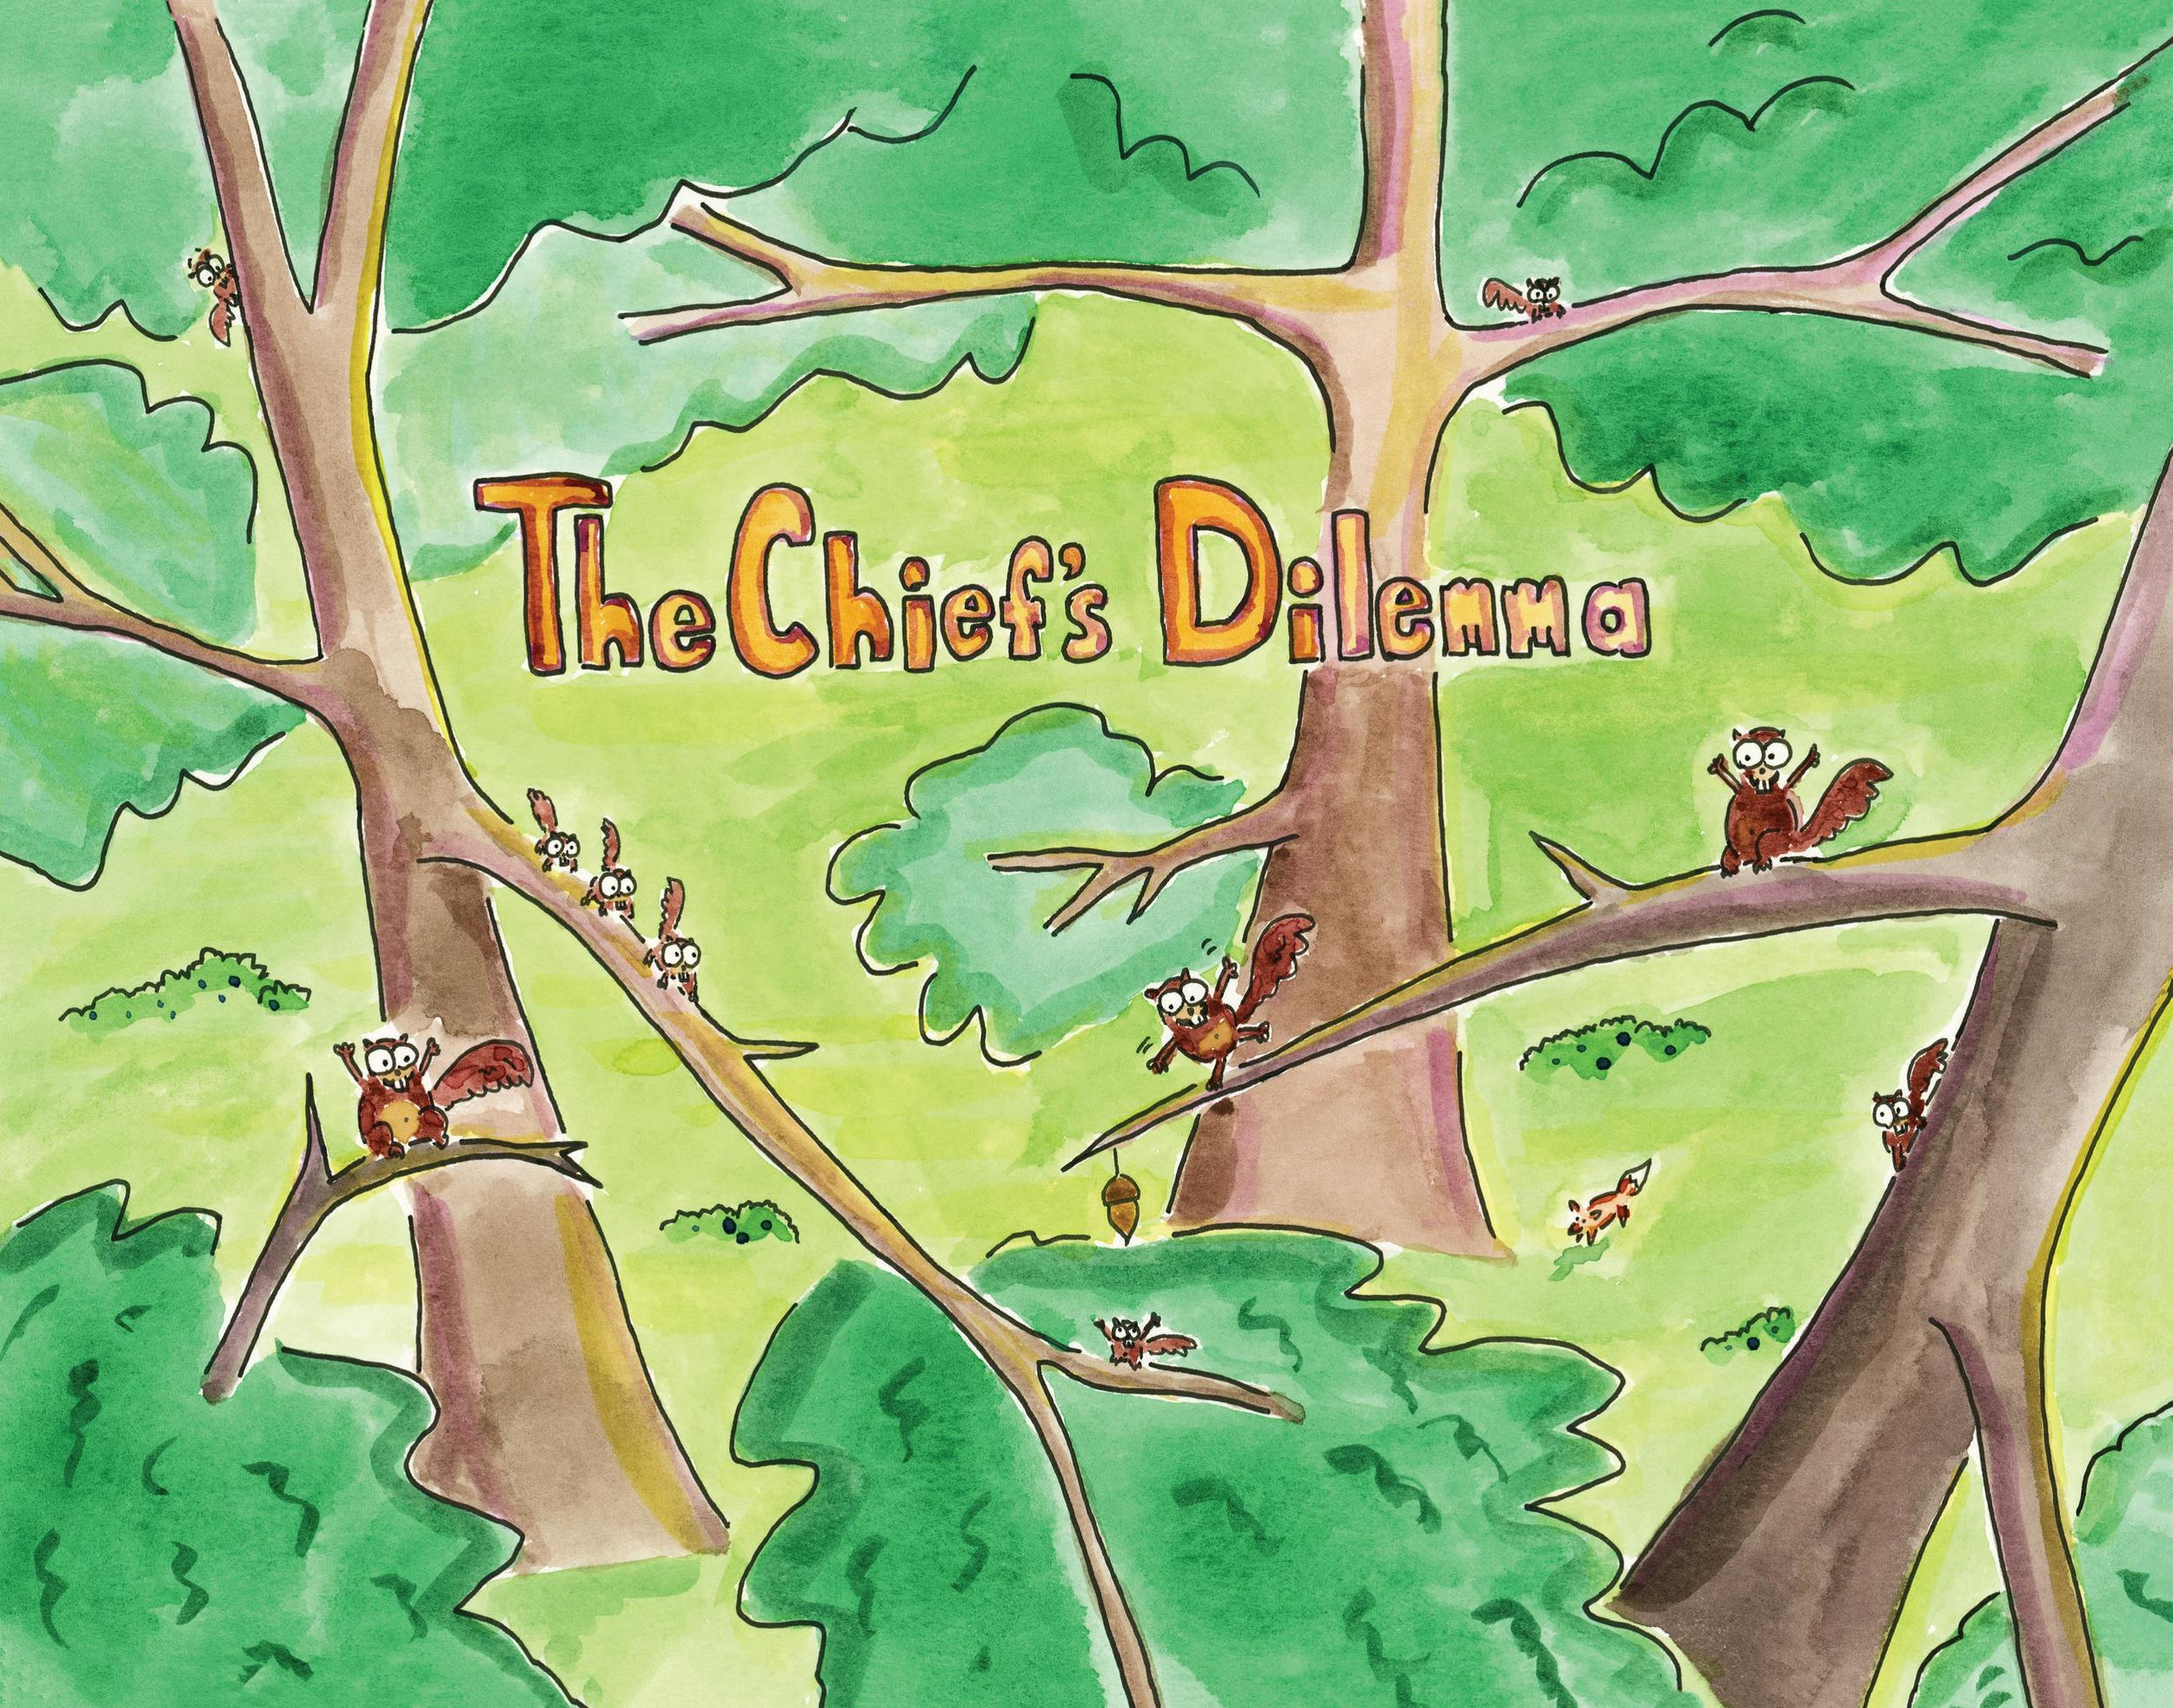 Book 2 - The Chief's Dilemma